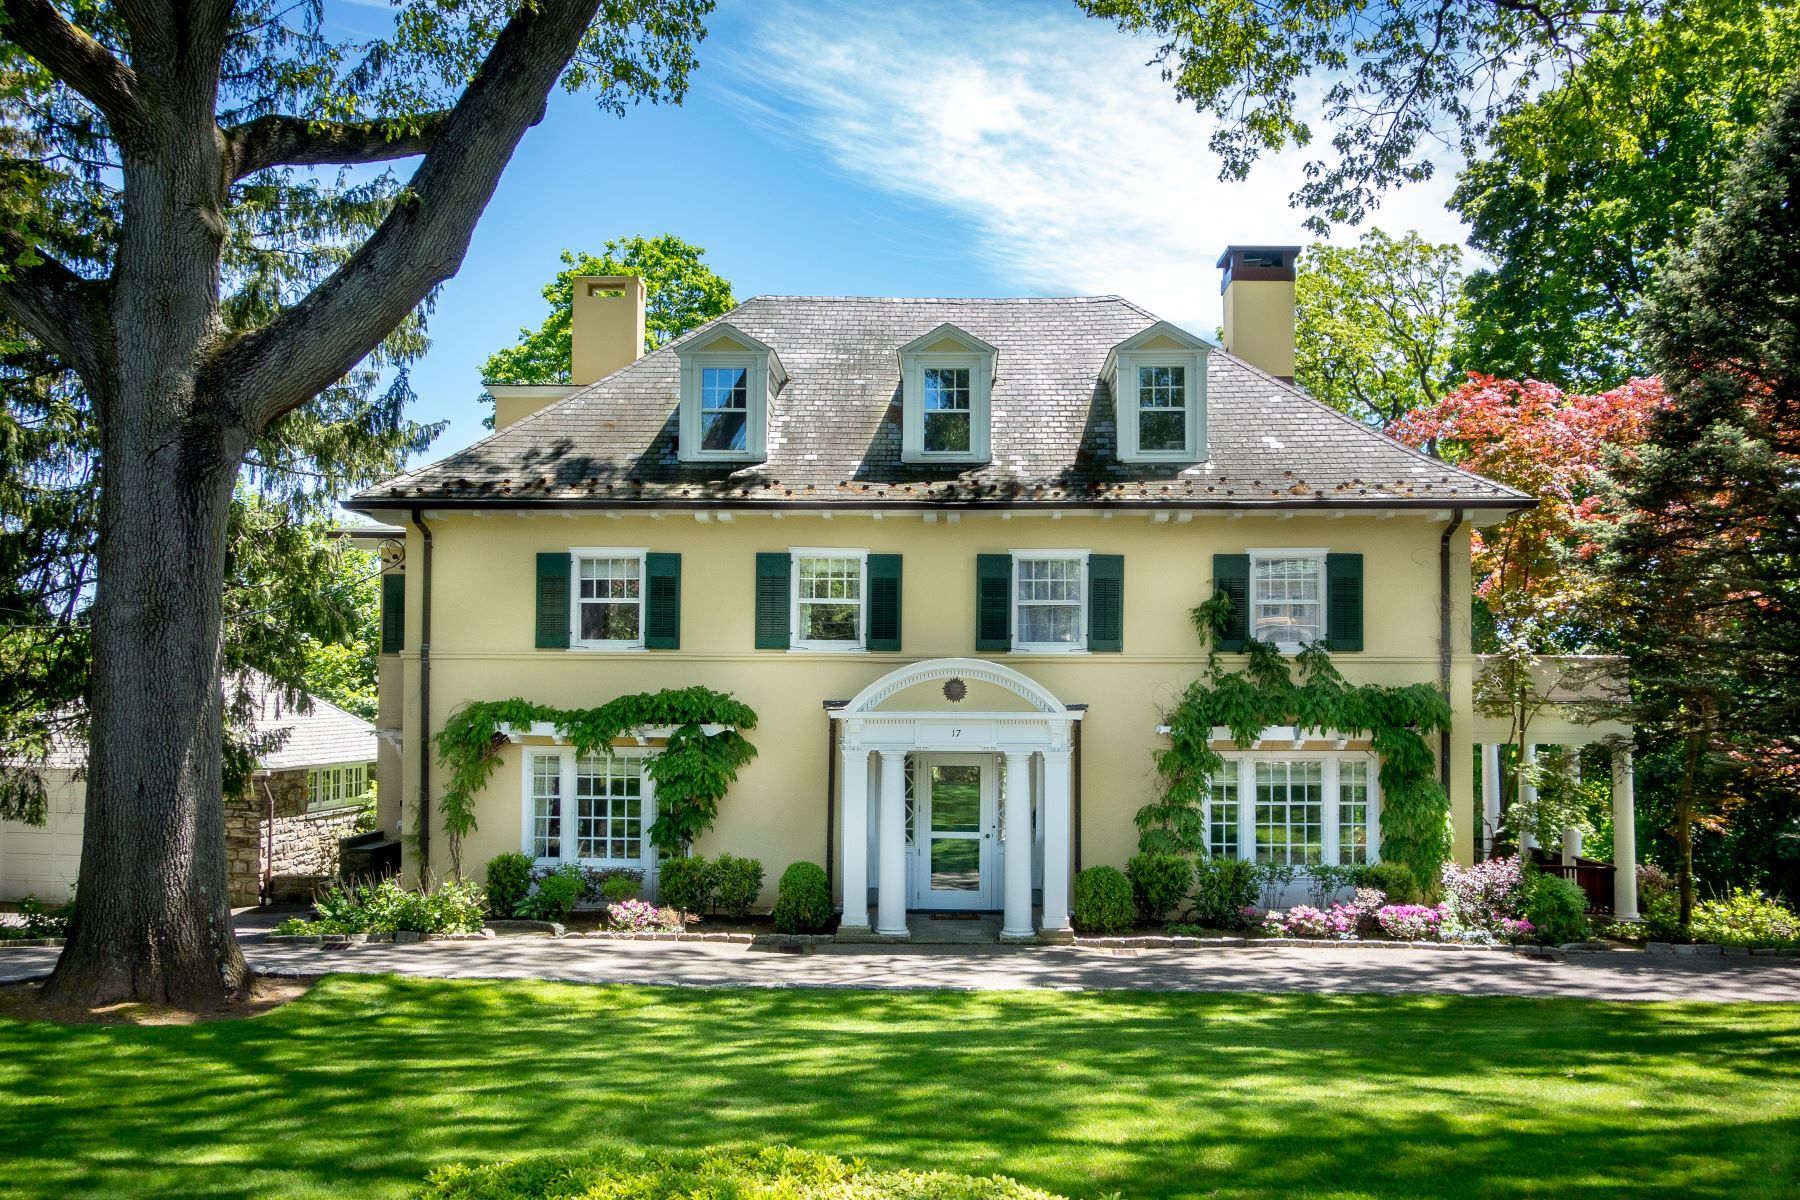 Single Family Homes for Sale at Welcome To 17 Ridge Road 17 Ridge Road Bronxville, New York 10708 United States